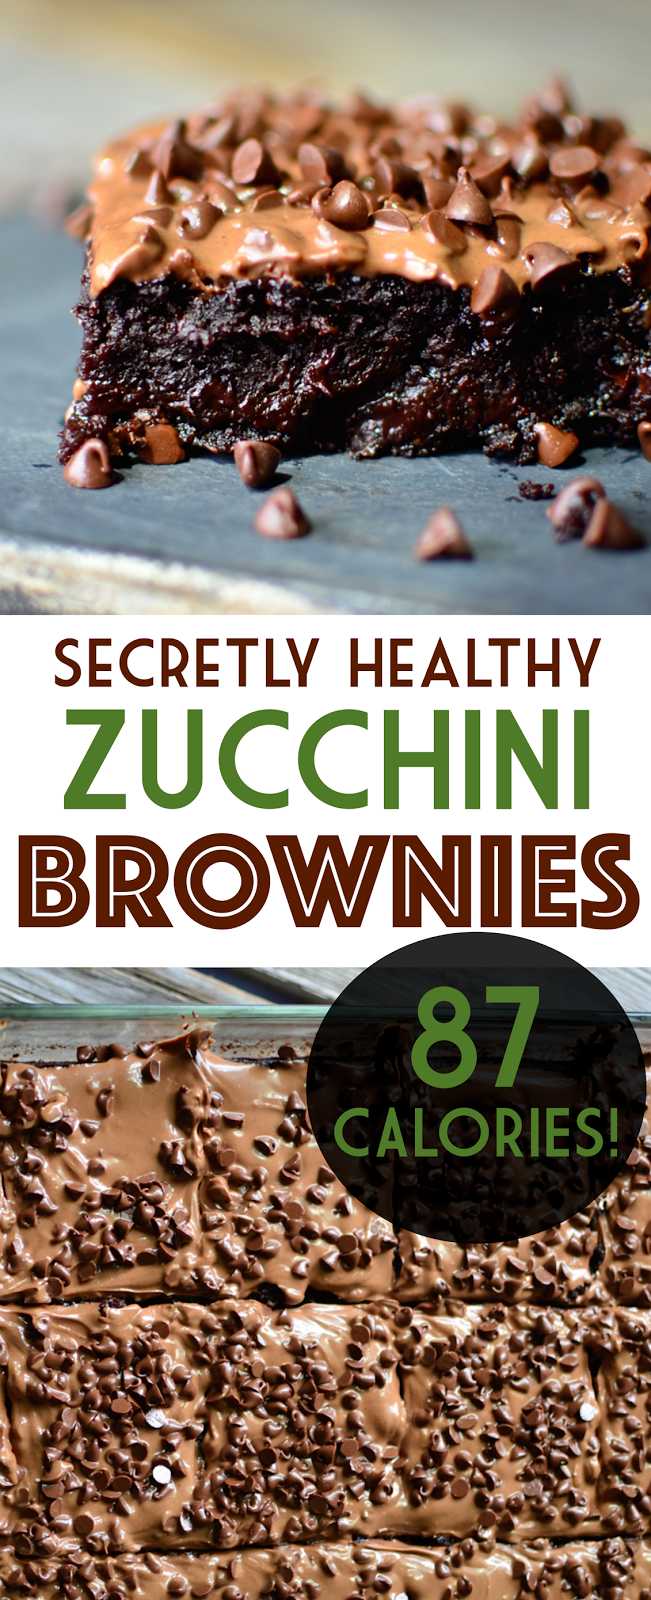 Secretly Healthy 87 Calorie Brownies! Have you ever wished you could have a huge, rich gooey brownie for under 100 calories? Well now you can with these zucchini brownies! #lemonade